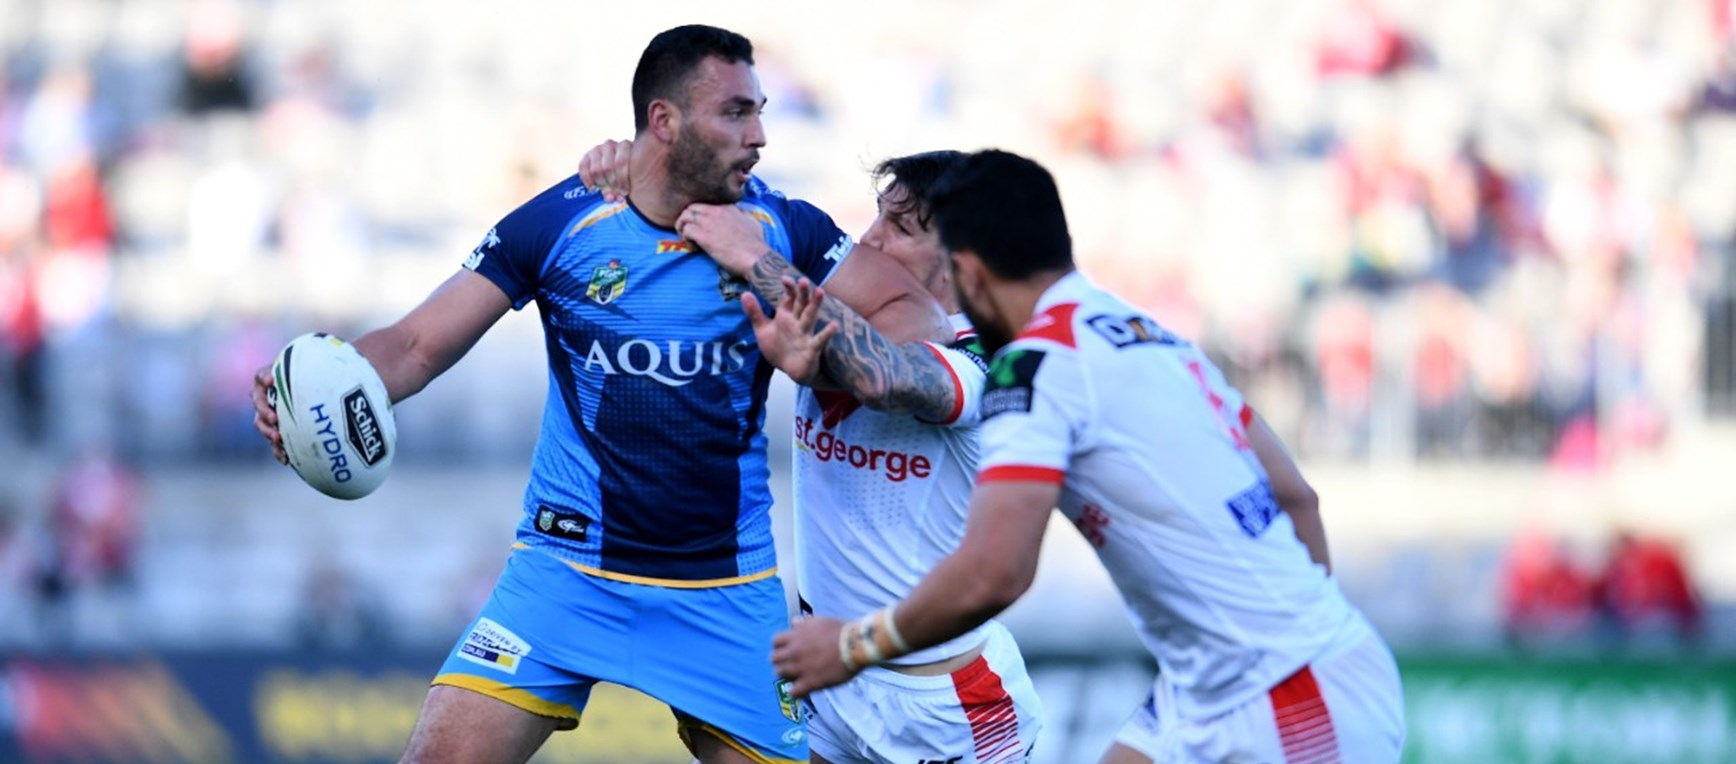 GALLERY: Dragons v Titans